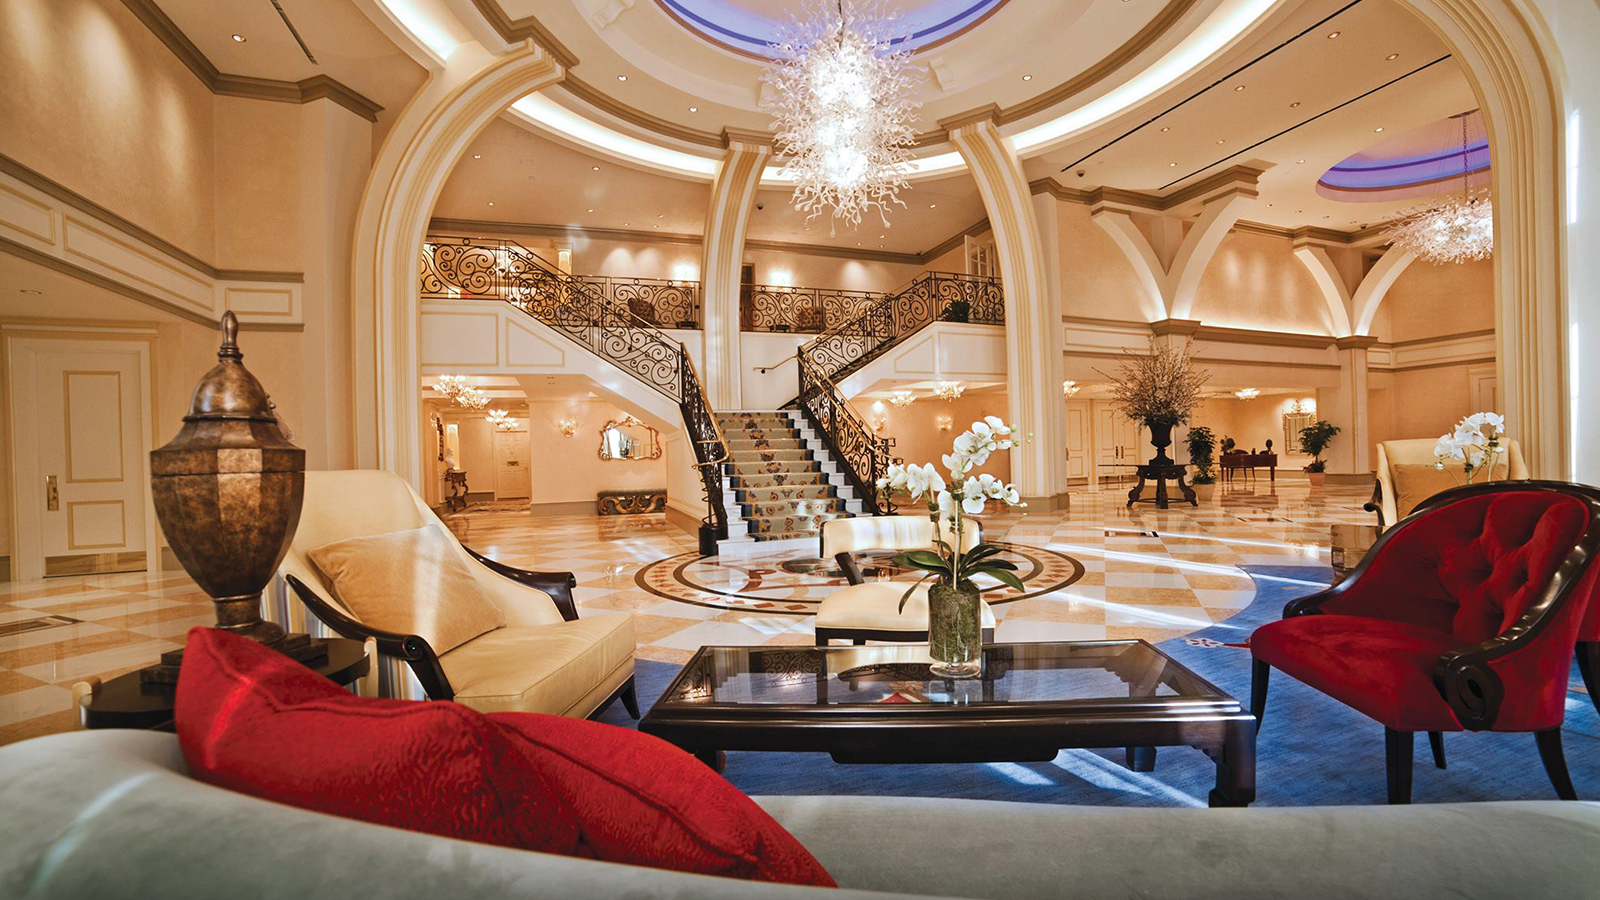 10-of-Our-Favorite-Luxury-Wedding-Venues-in-the-U.S.-00026.png